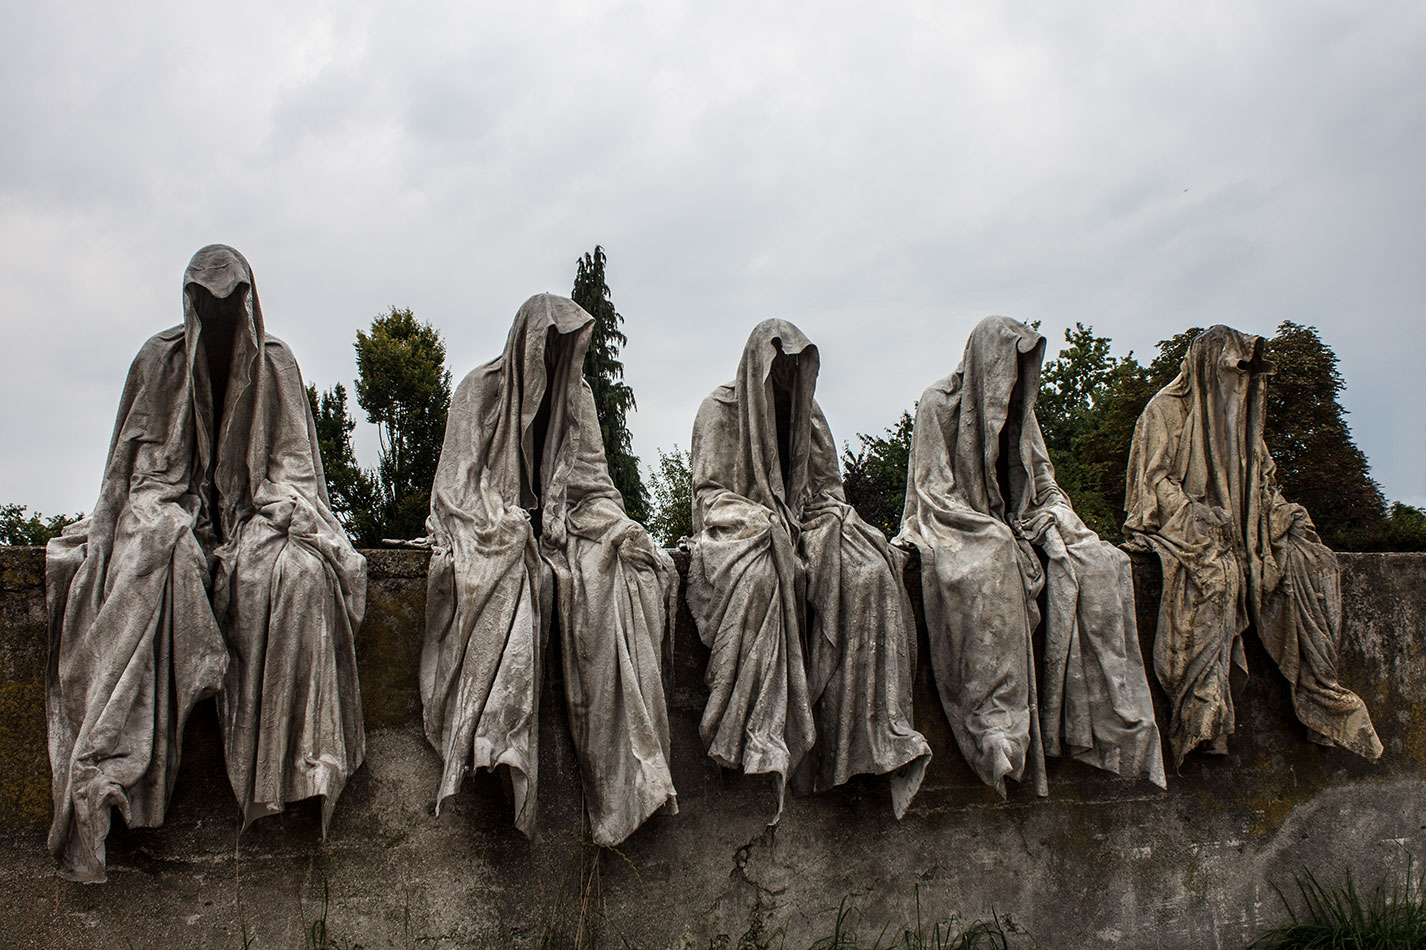 Mobile gallery guardians of time sculptor manfred kili kielnhofer contemporary fine art design sculpture modern famous 3d statue public arts 26111 jpg